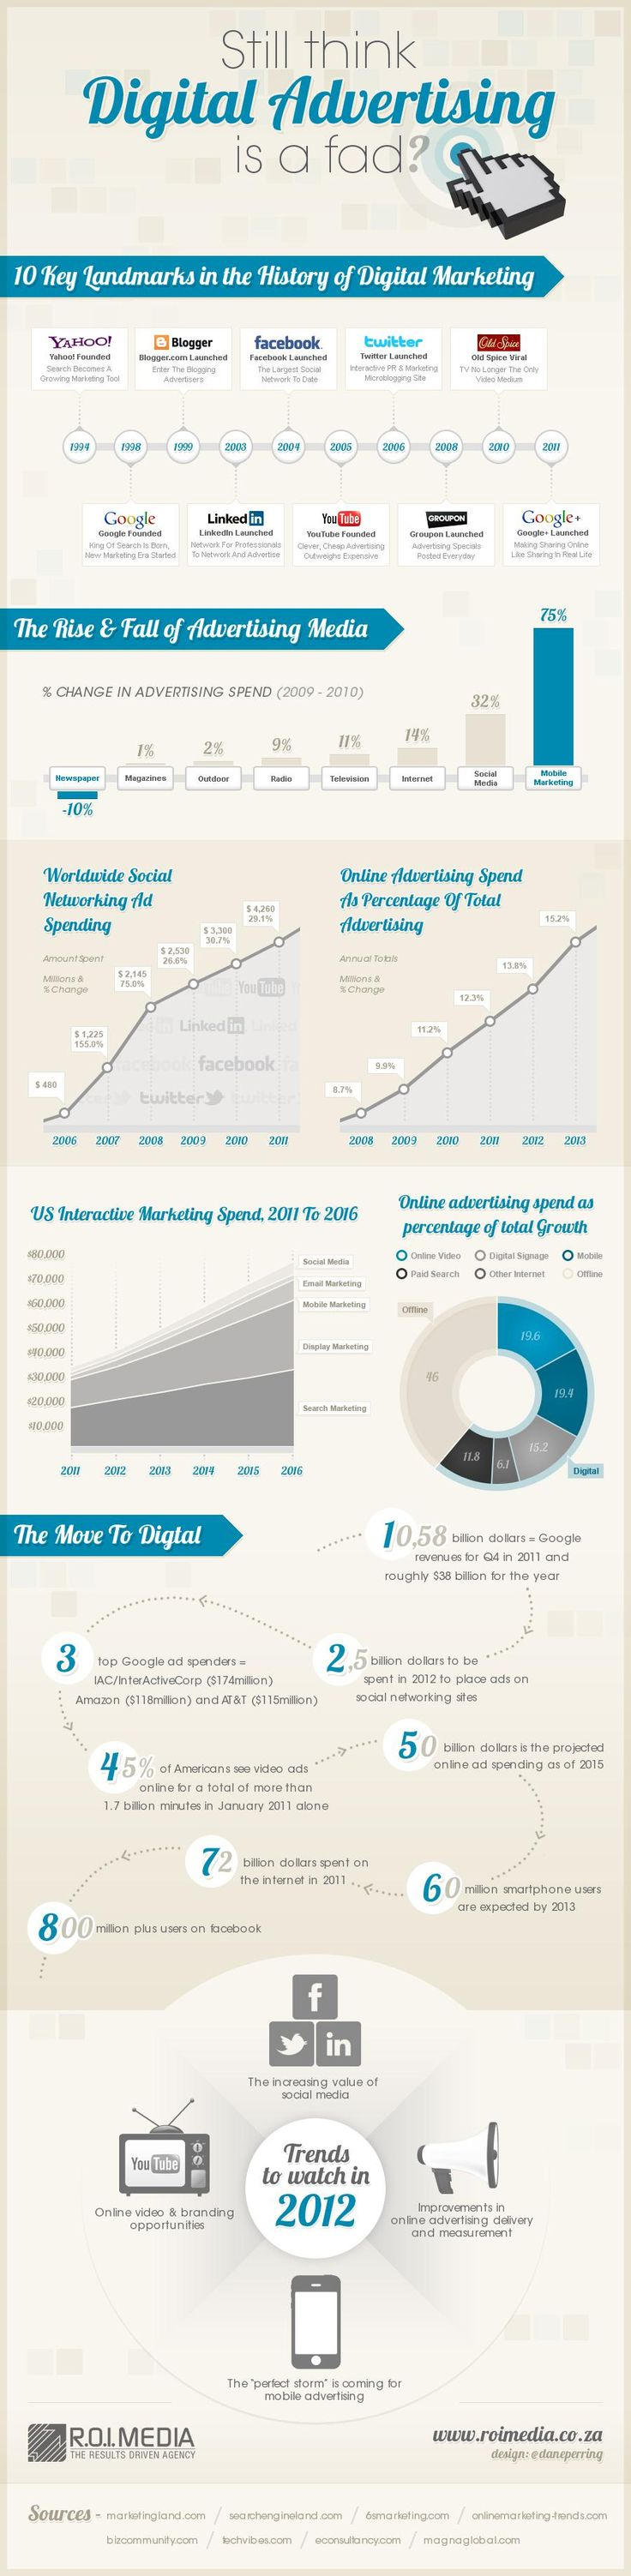 Still think Digital advertising is a fad?